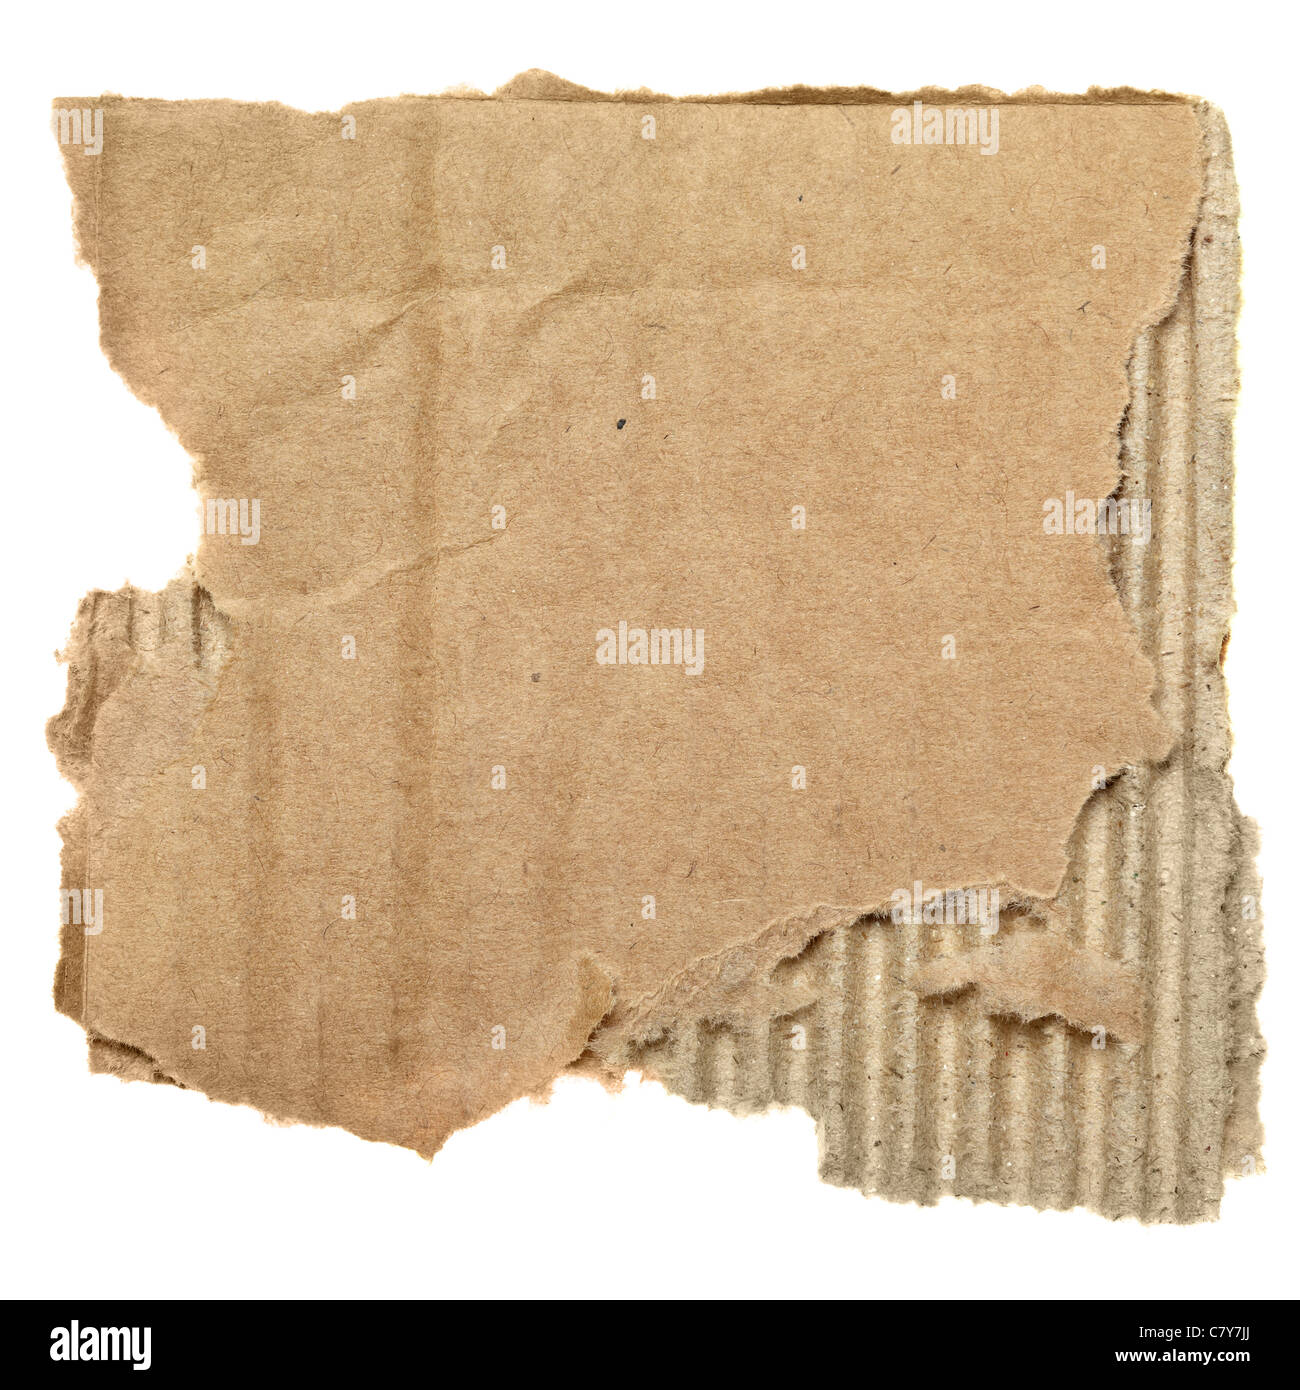 Scrap of cardboard isolated over the white background - Stock Image